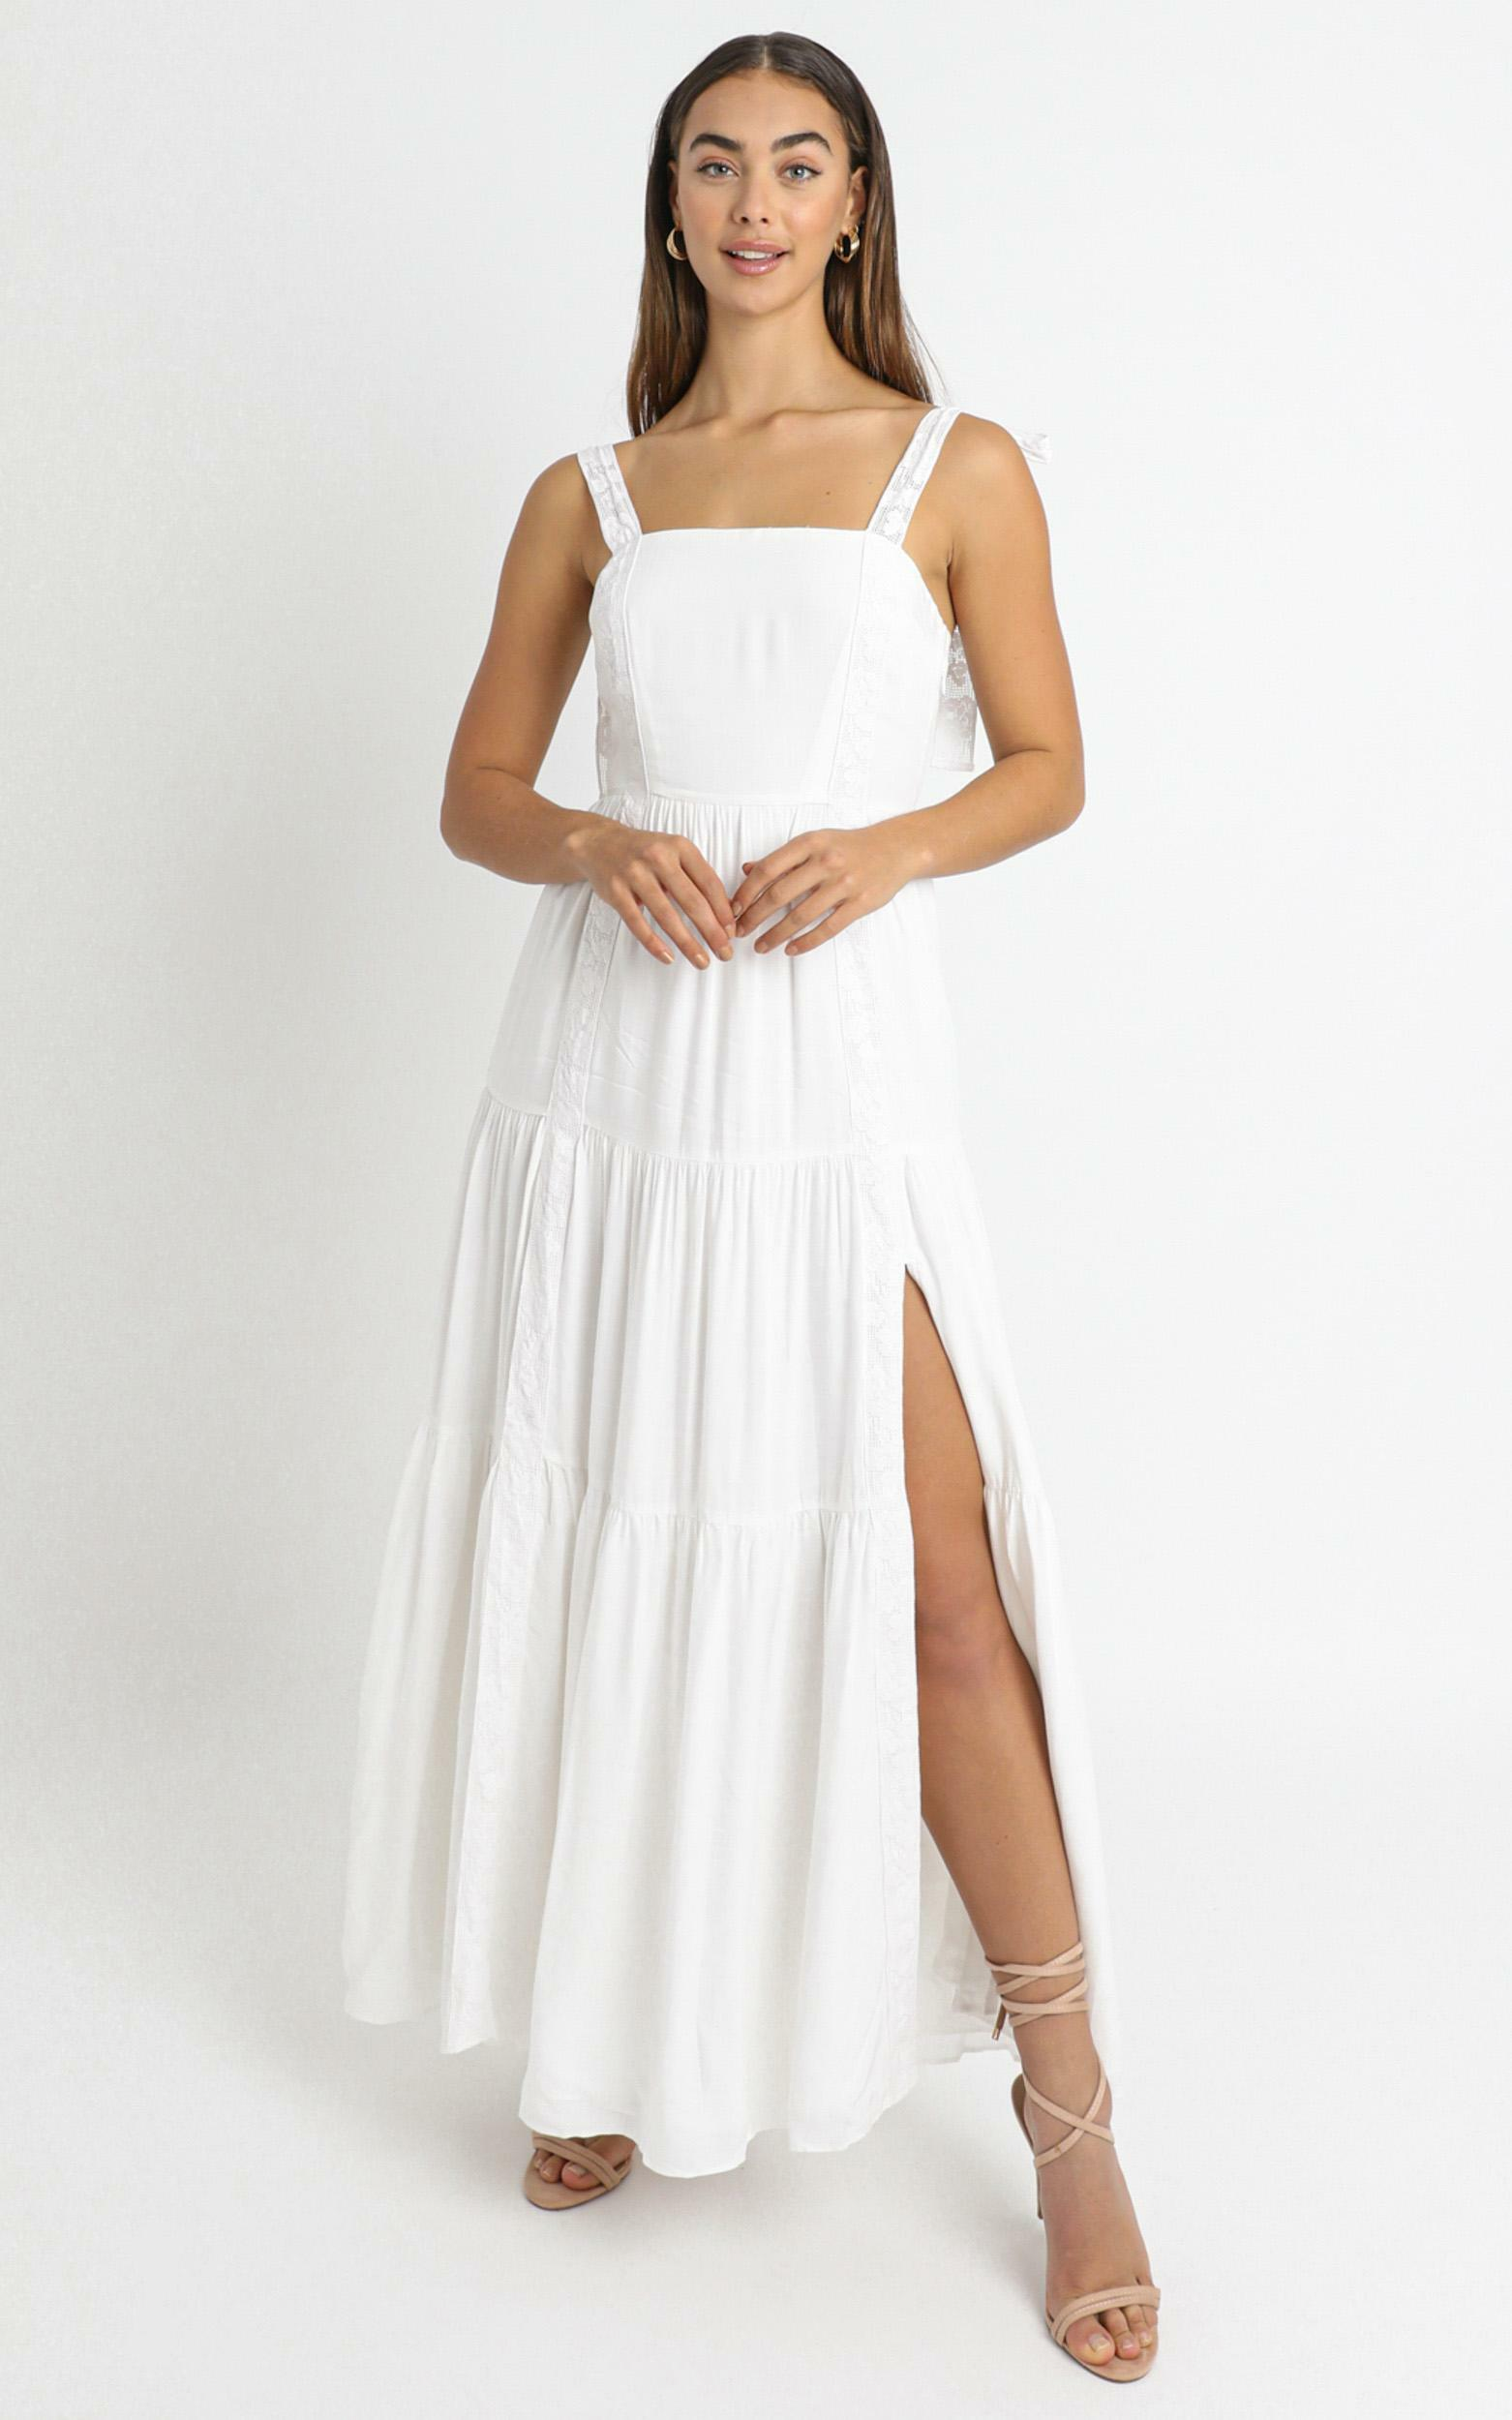 Afternoon Stroll Maxi Dress In white - 4 (XXS), WHT1, hi-res image number null